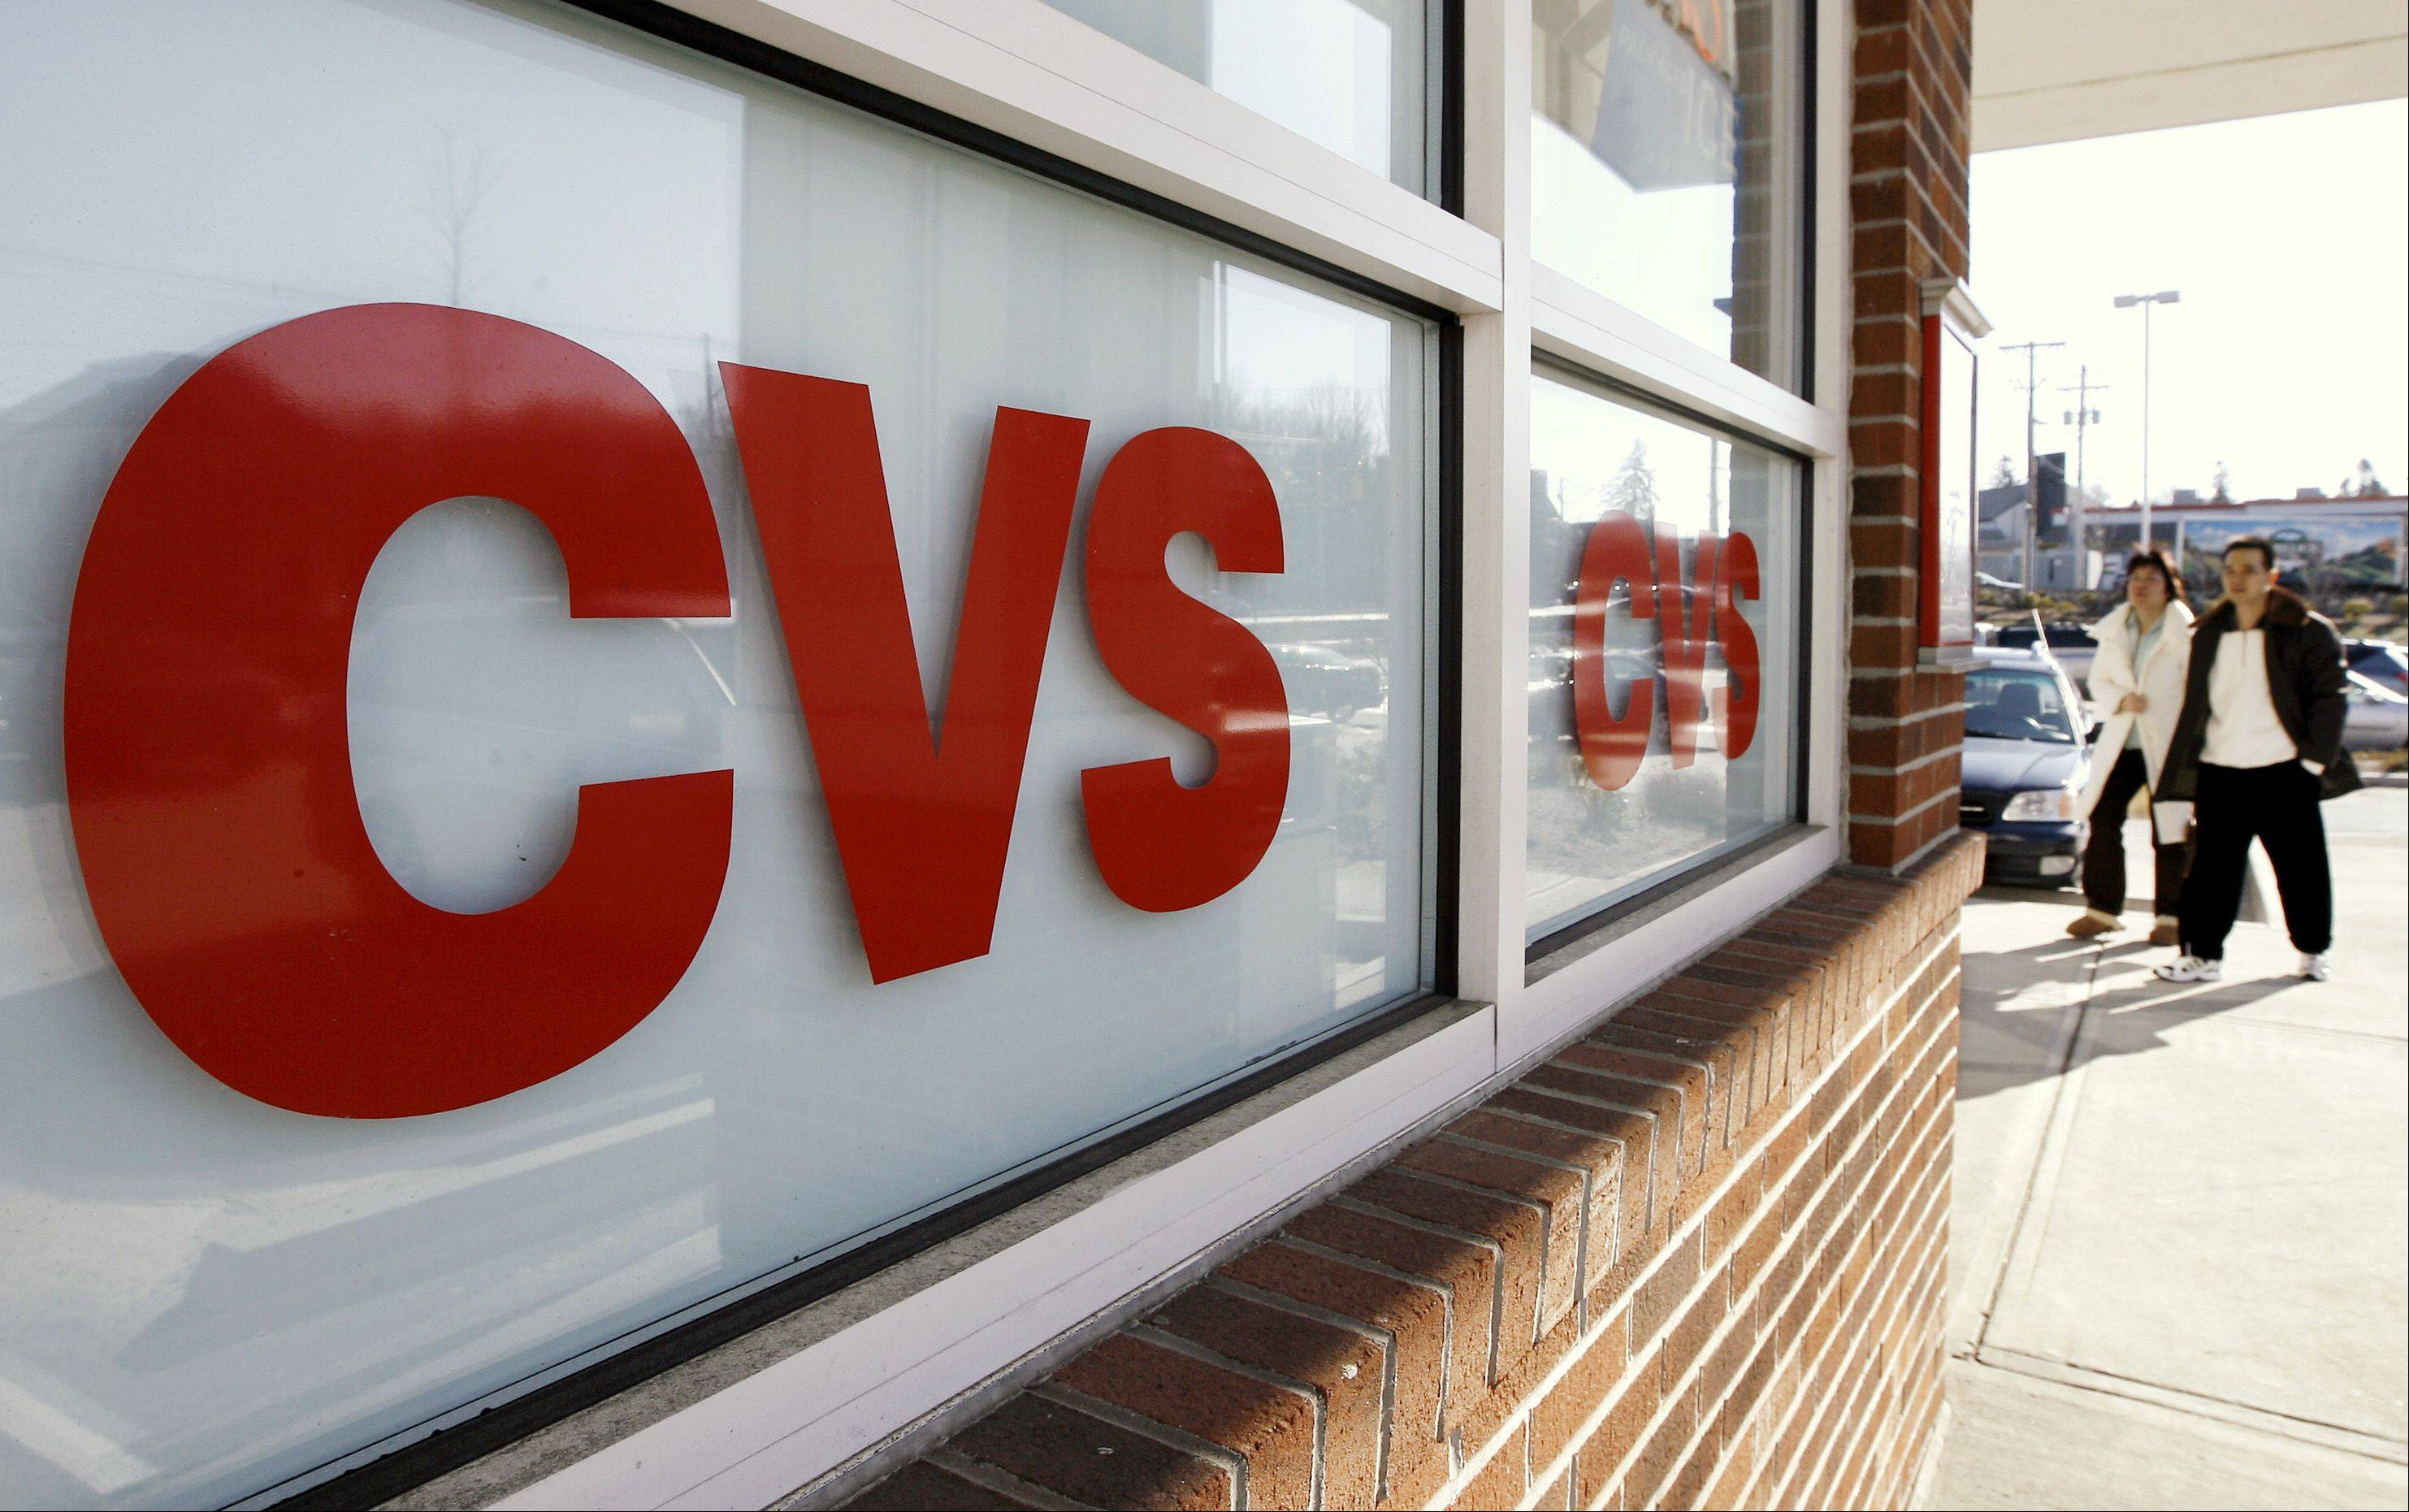 CVS Caremark says its third-quarter earnings climbed 16 percent. The drugstore operator and pharmacy benefits manager posted revenue increases in both businesses. The company also raised its full-year earnings outlook.